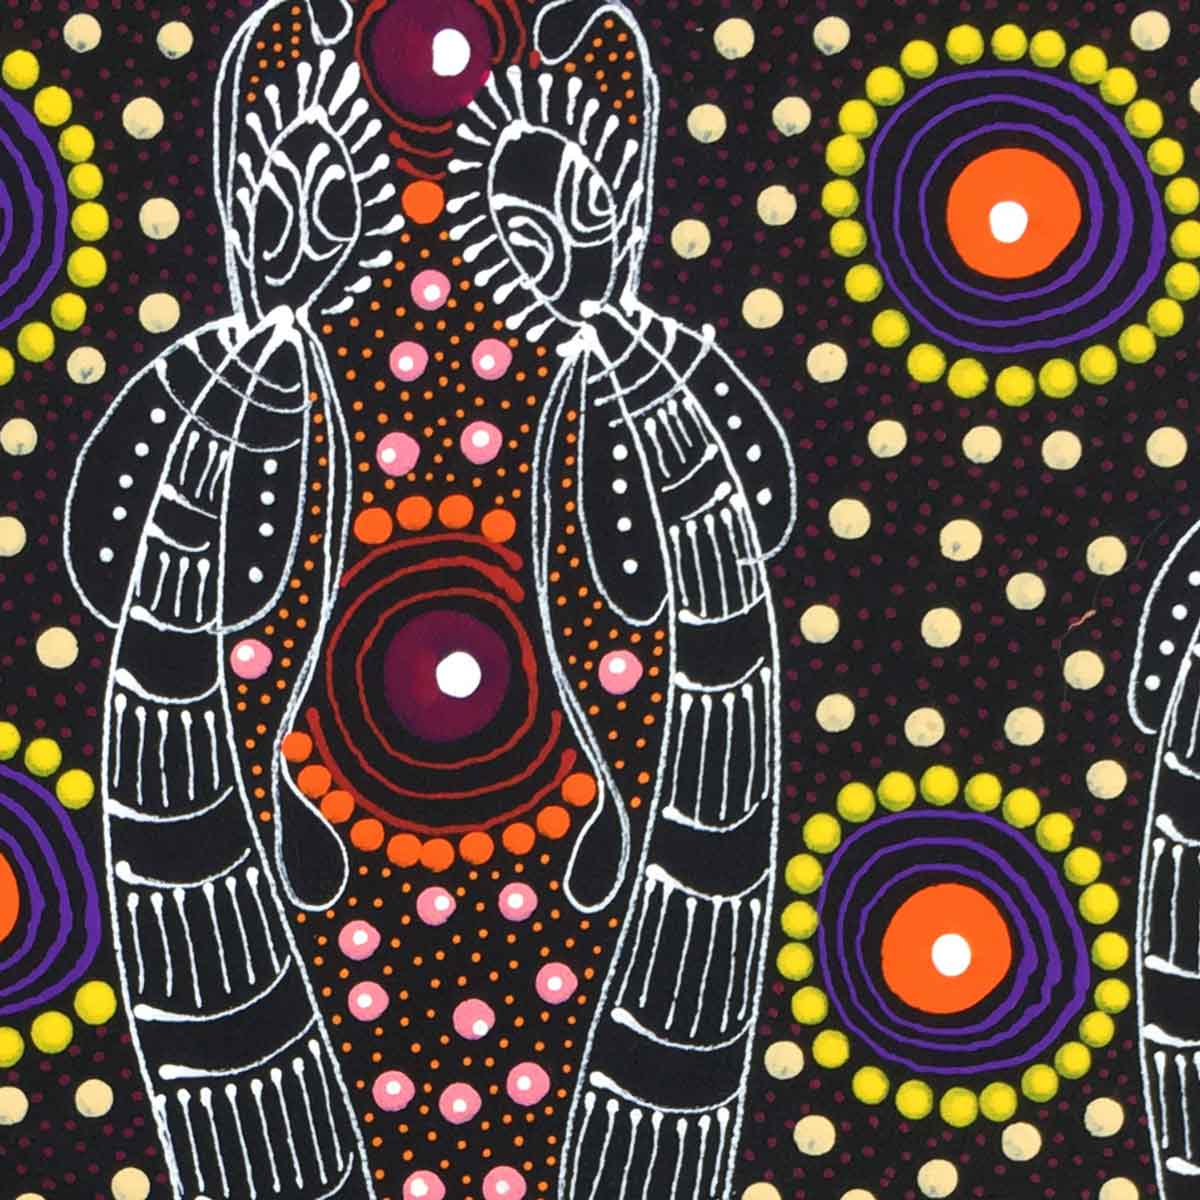 Small Dreamtime Sisters painting by Colleen Wallace Nungari